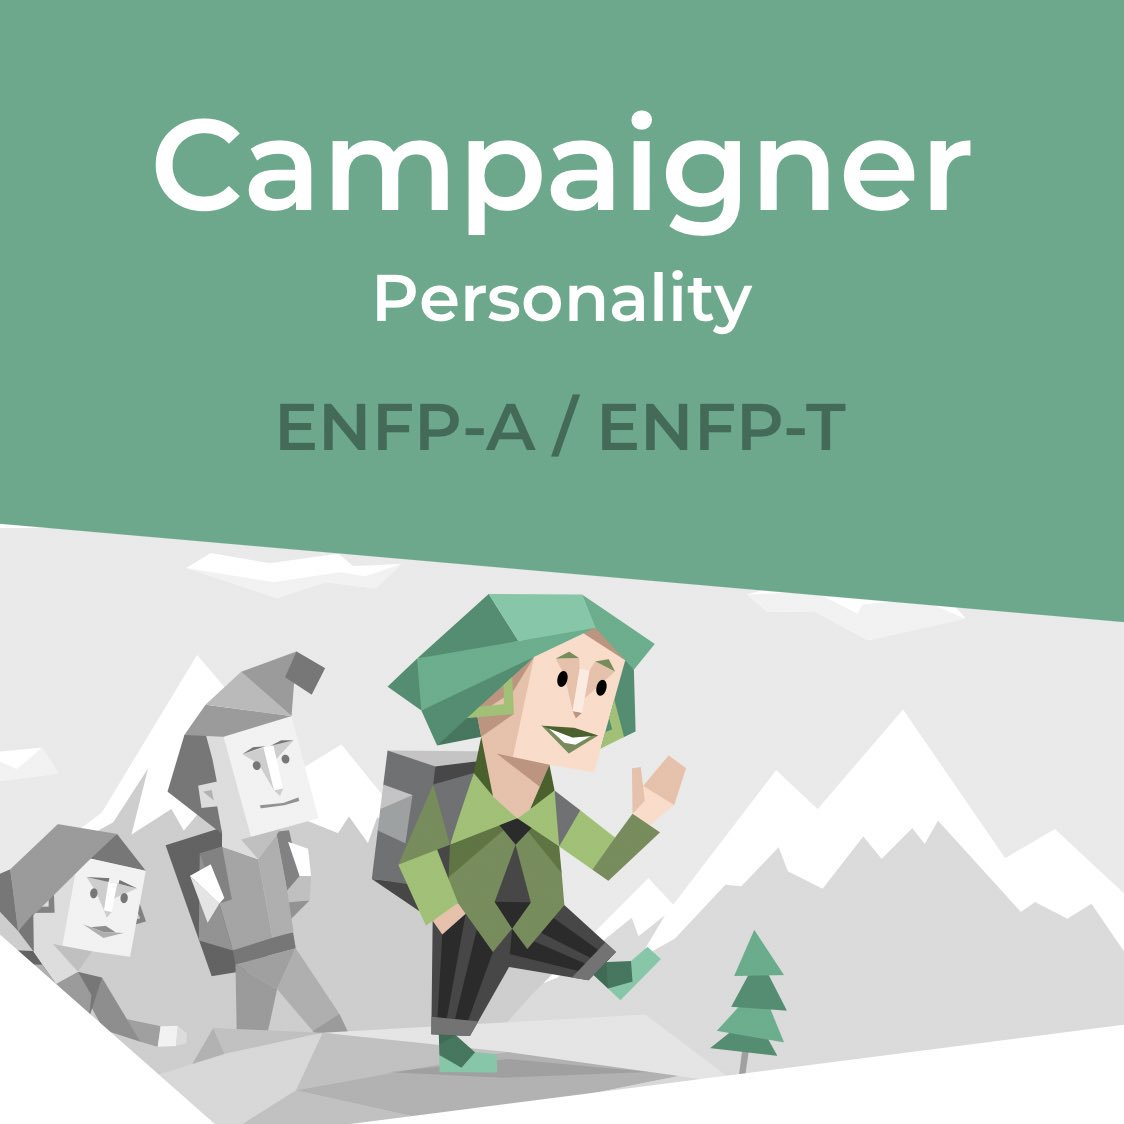 """WOW! Namjoon was added on the page for Campaigner Personality results on the 16 Personalities website!  They drew and placed him as one of the FIRST TWO people) alongside Ironman 👏) listed under """"Campaigners You May Know"""" omg 😭😭😭  @BTS_twt #BTS #방탄소년단"""